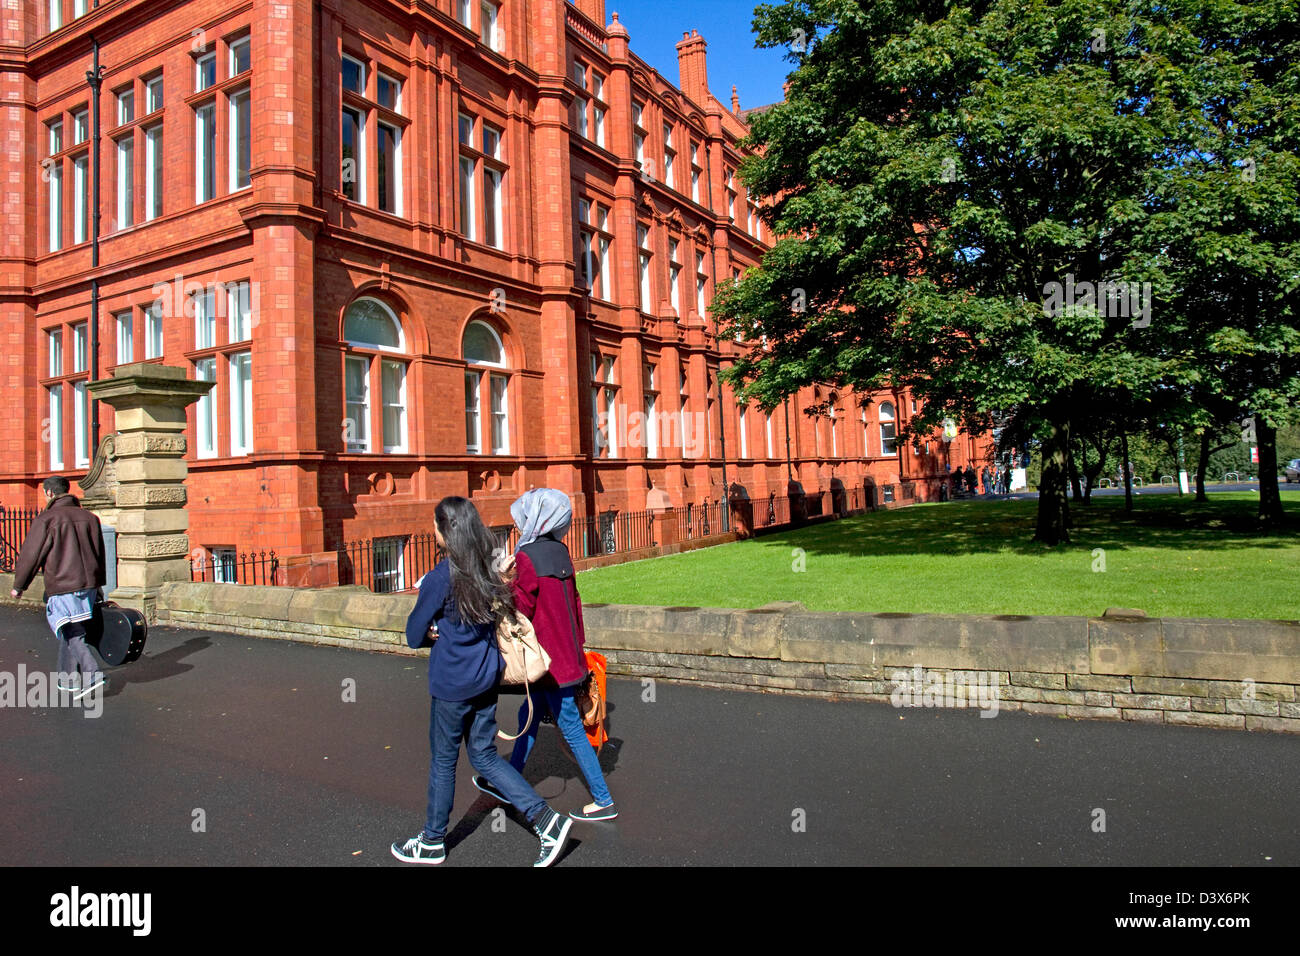 Peel Park Campus (main campus), ( Peel Building), University of Salford, Salford, Greater Manchester, England, UK Stock Photo